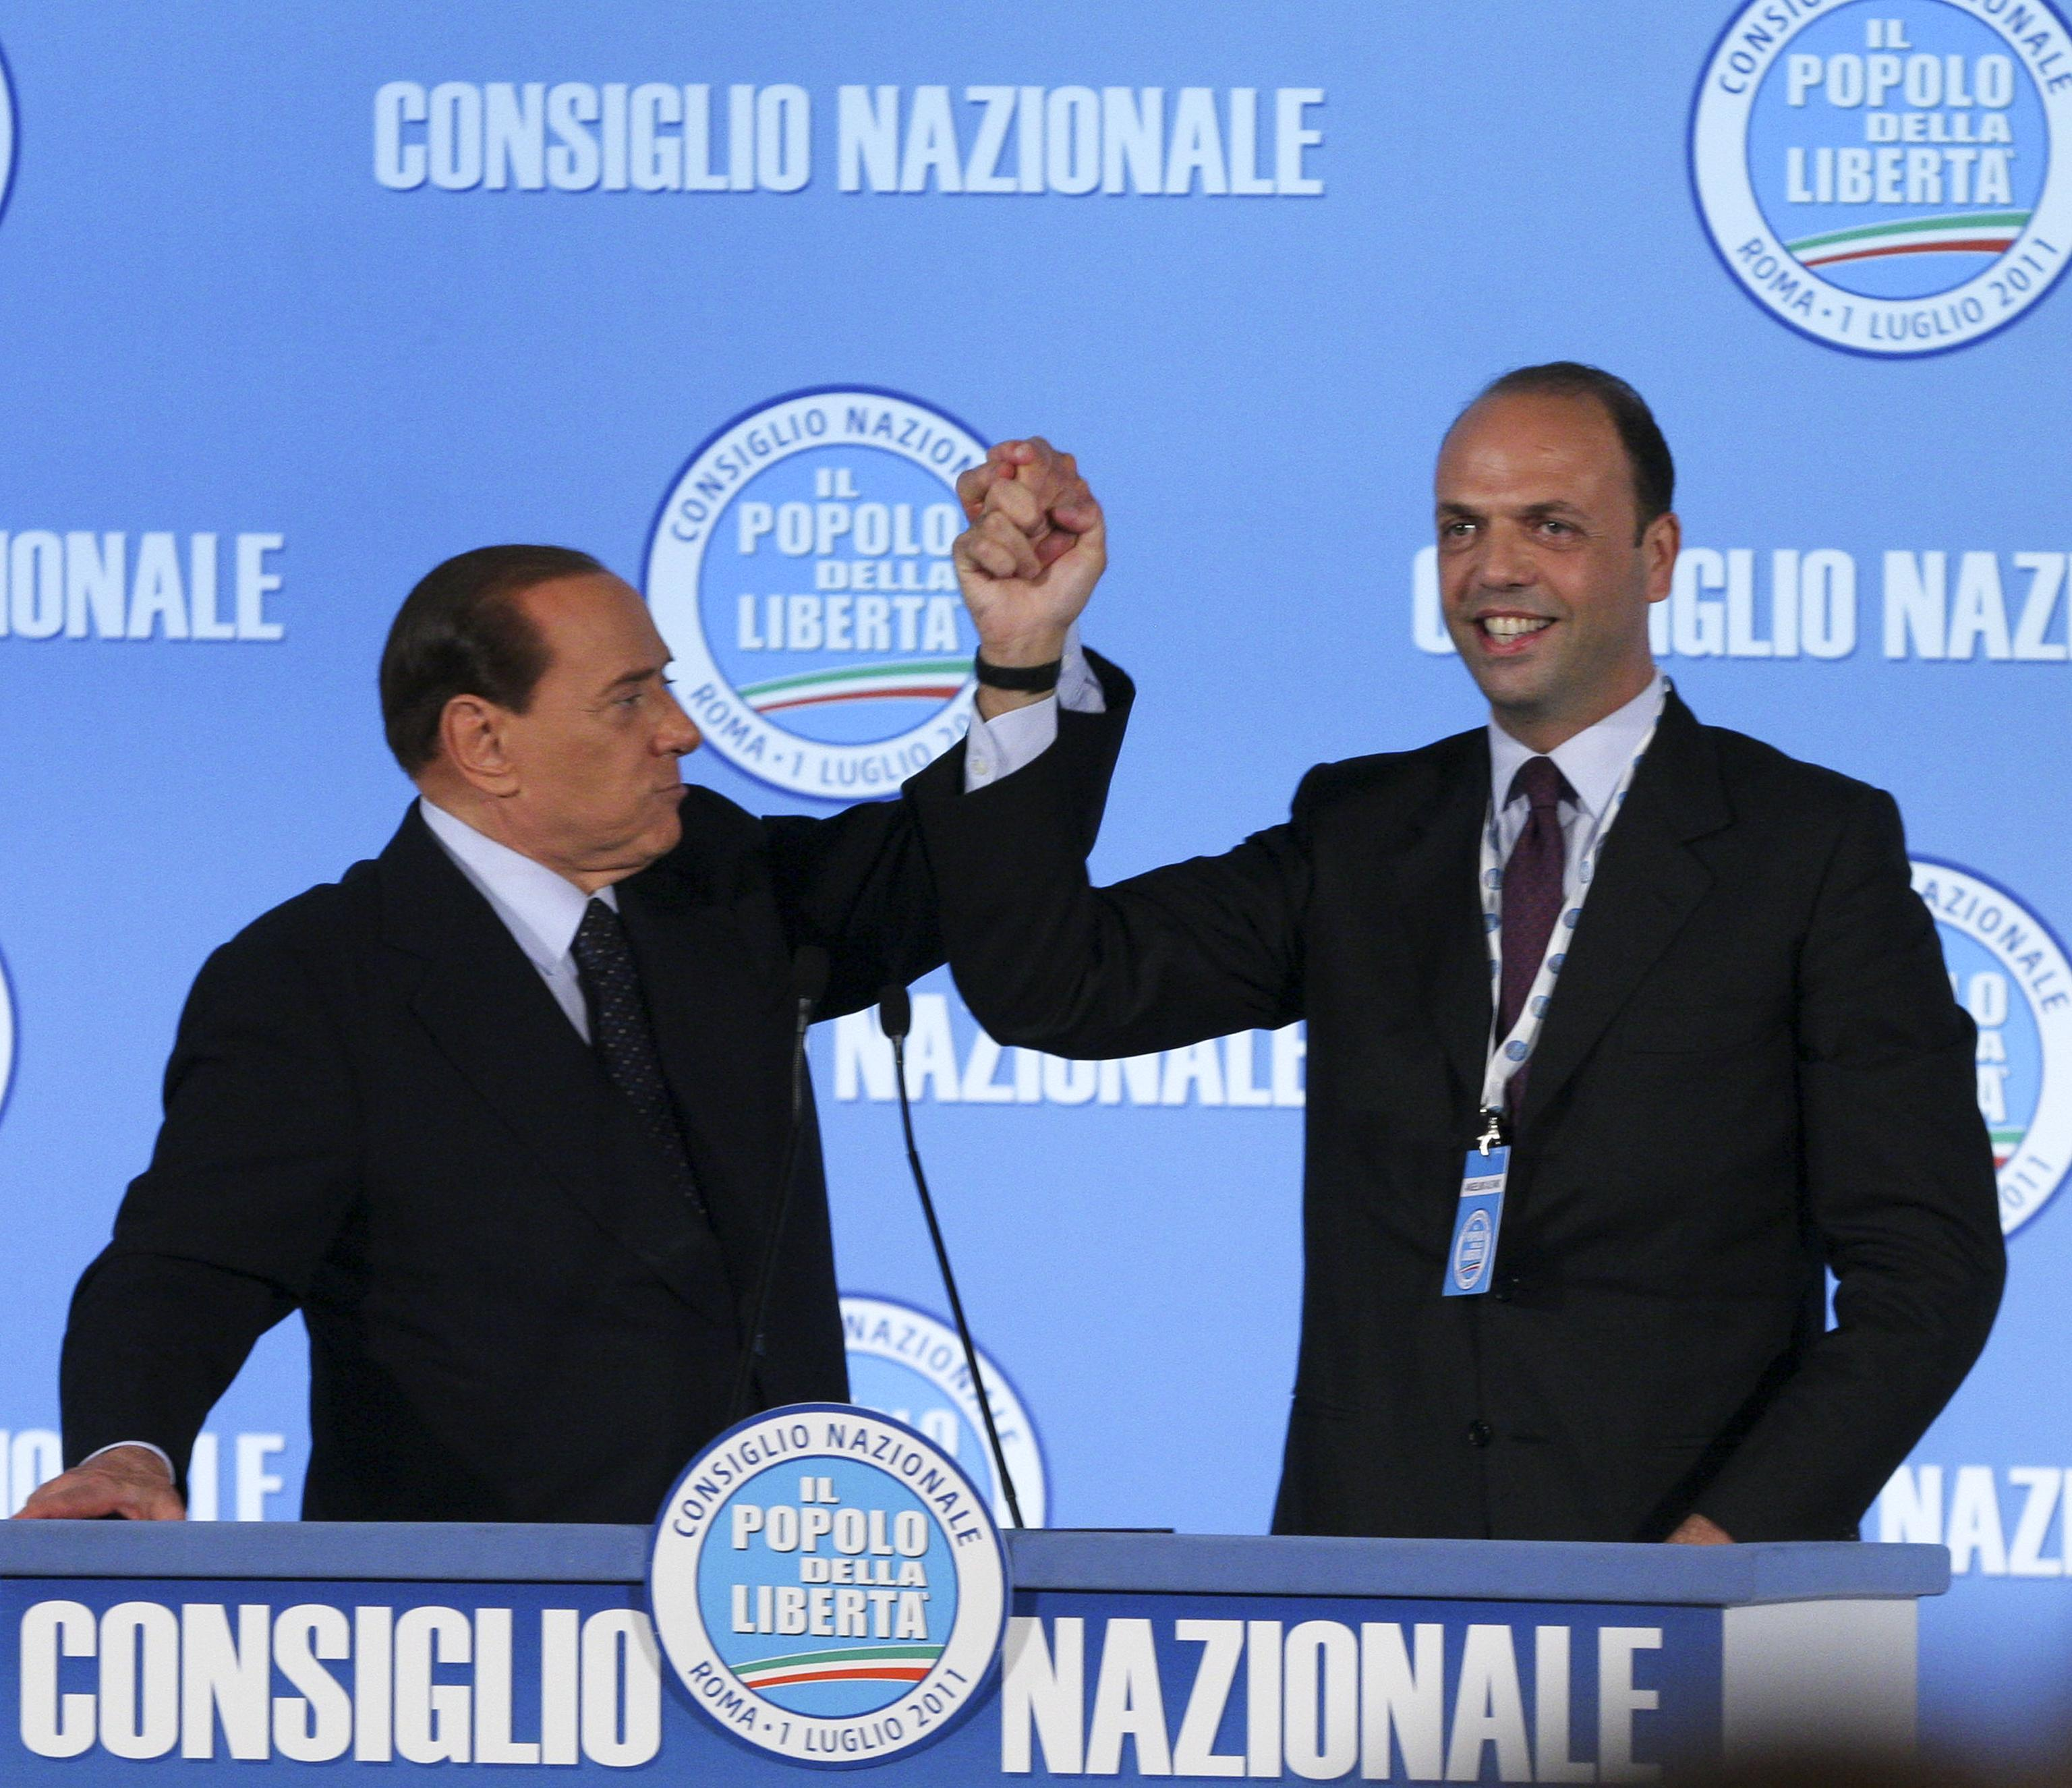  Silvio Berlusconi sceglie il suo erede Angelino Alfano, designandolo segretario del Pdl il primo luglio 2011 (Ansa/Peri) 